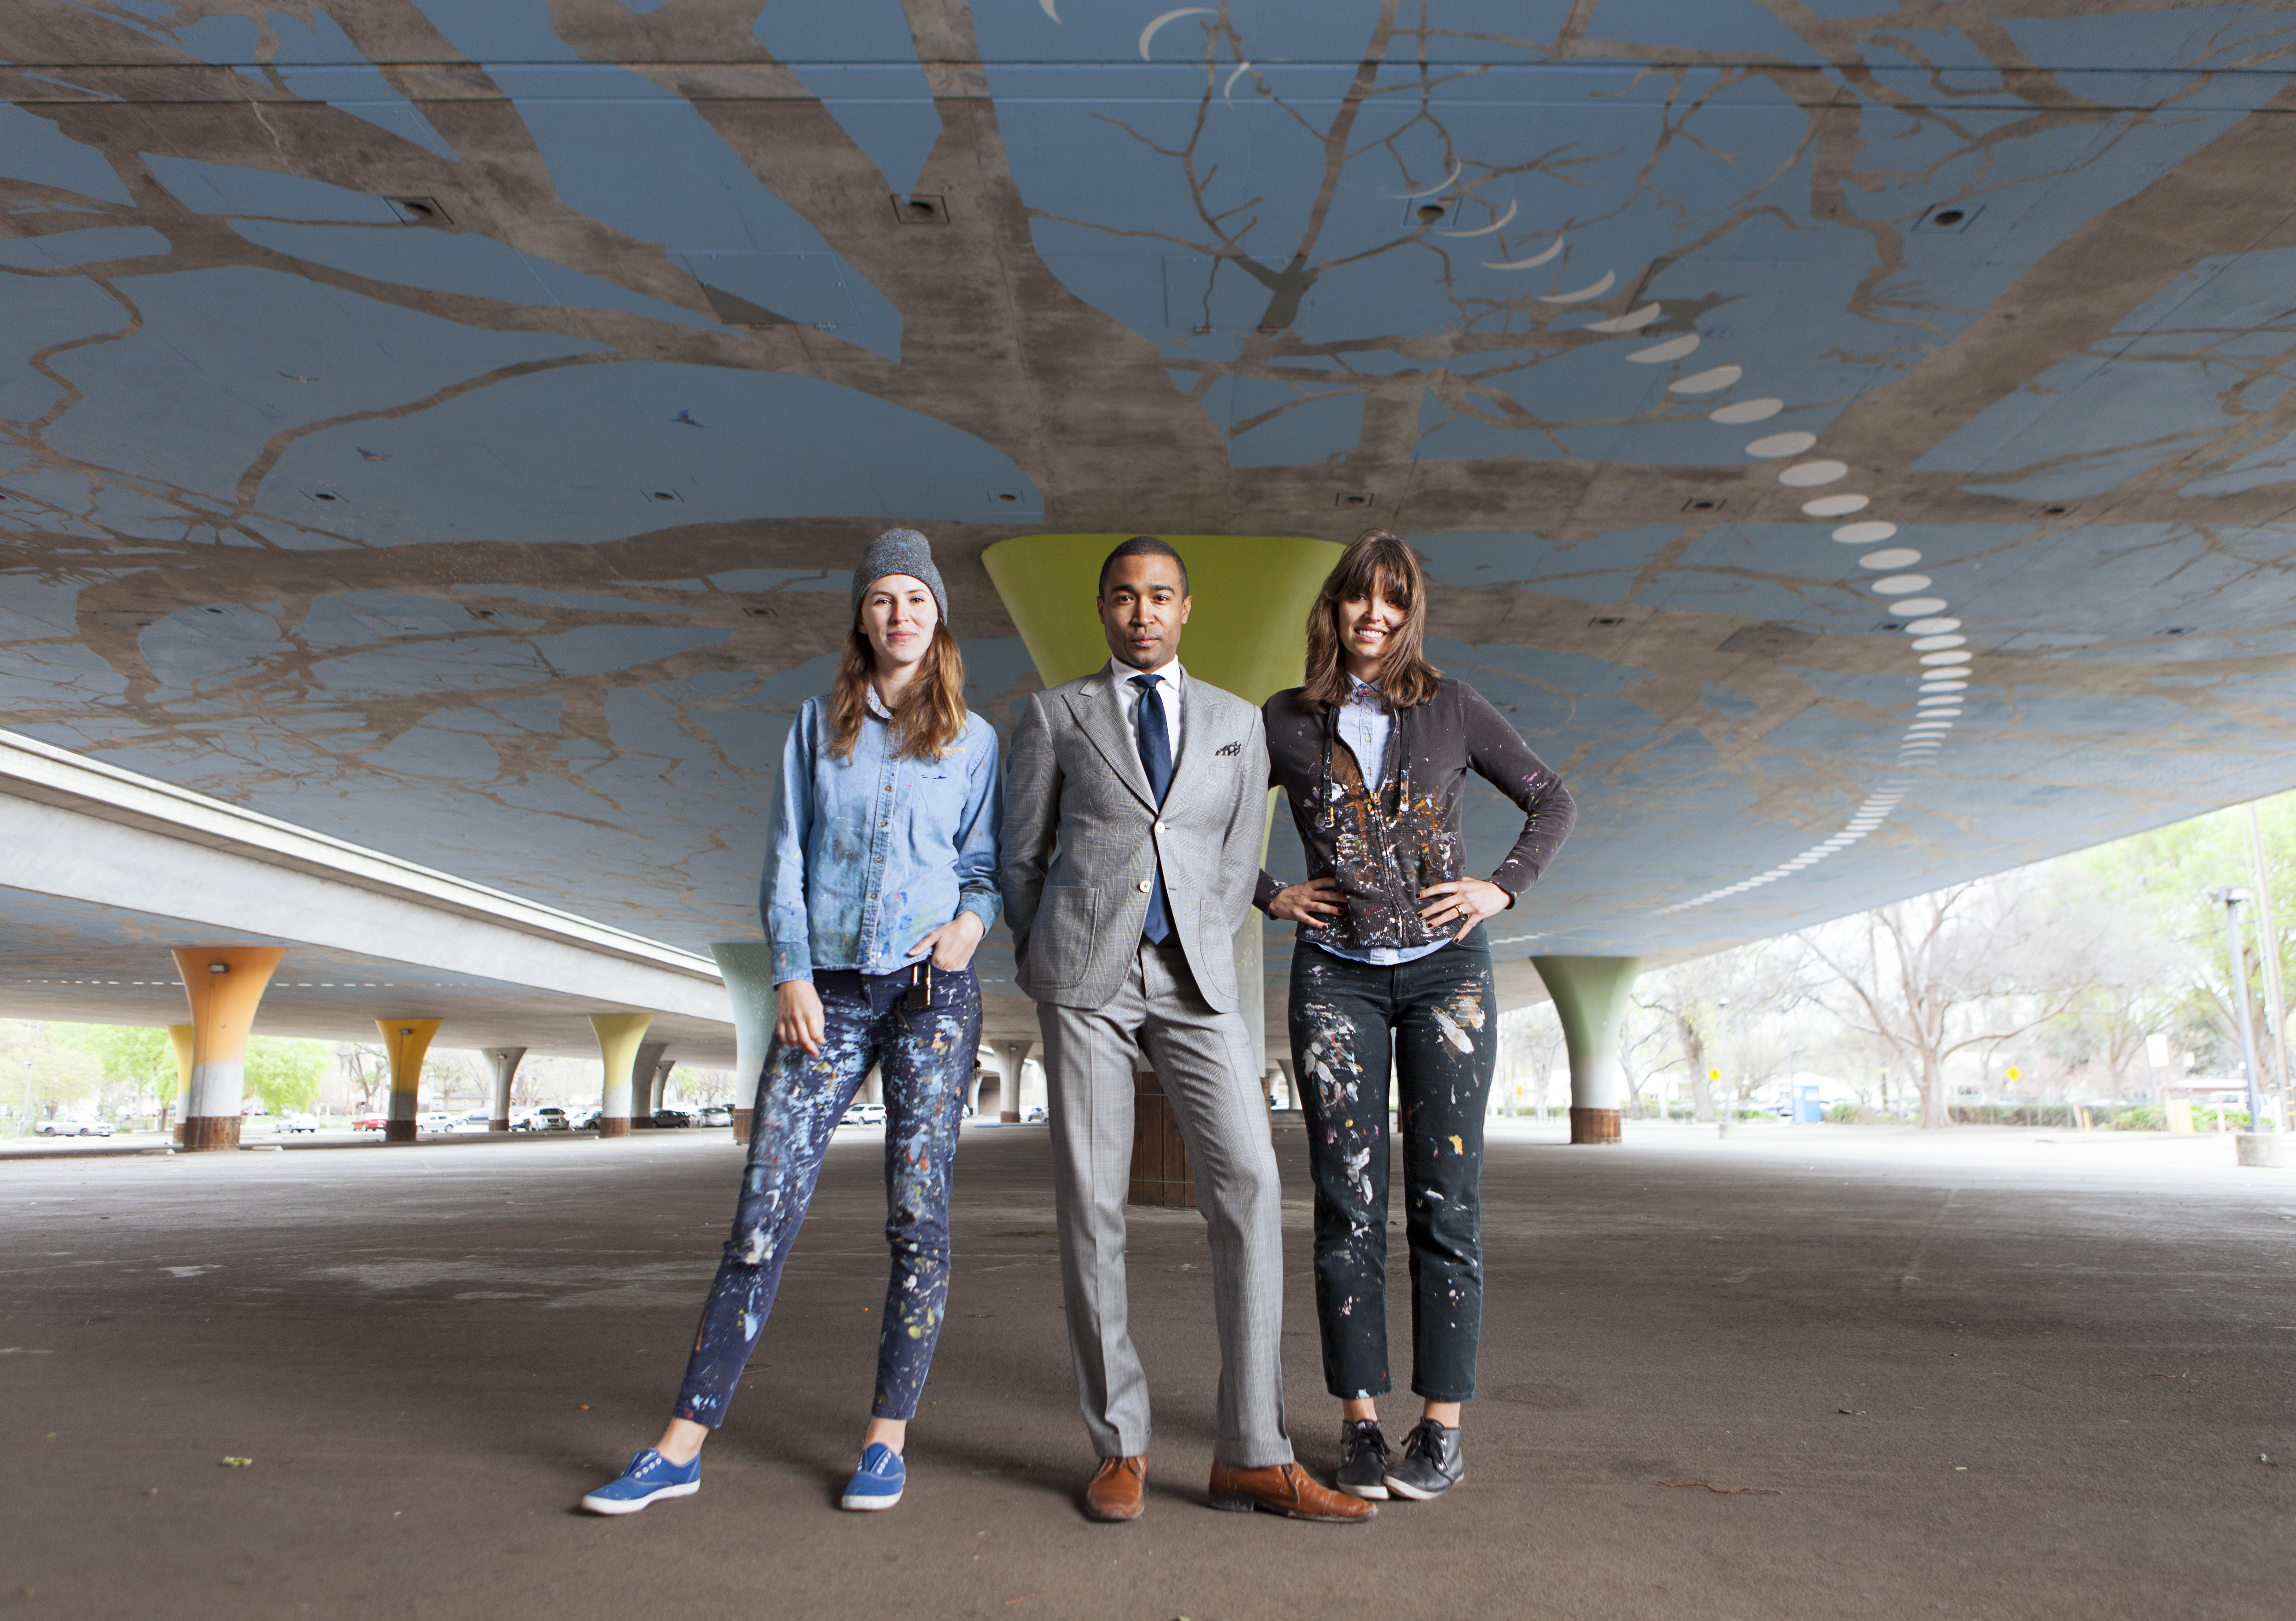 Muralists Sofia Lacin and Hennessy Christophel Team Up with